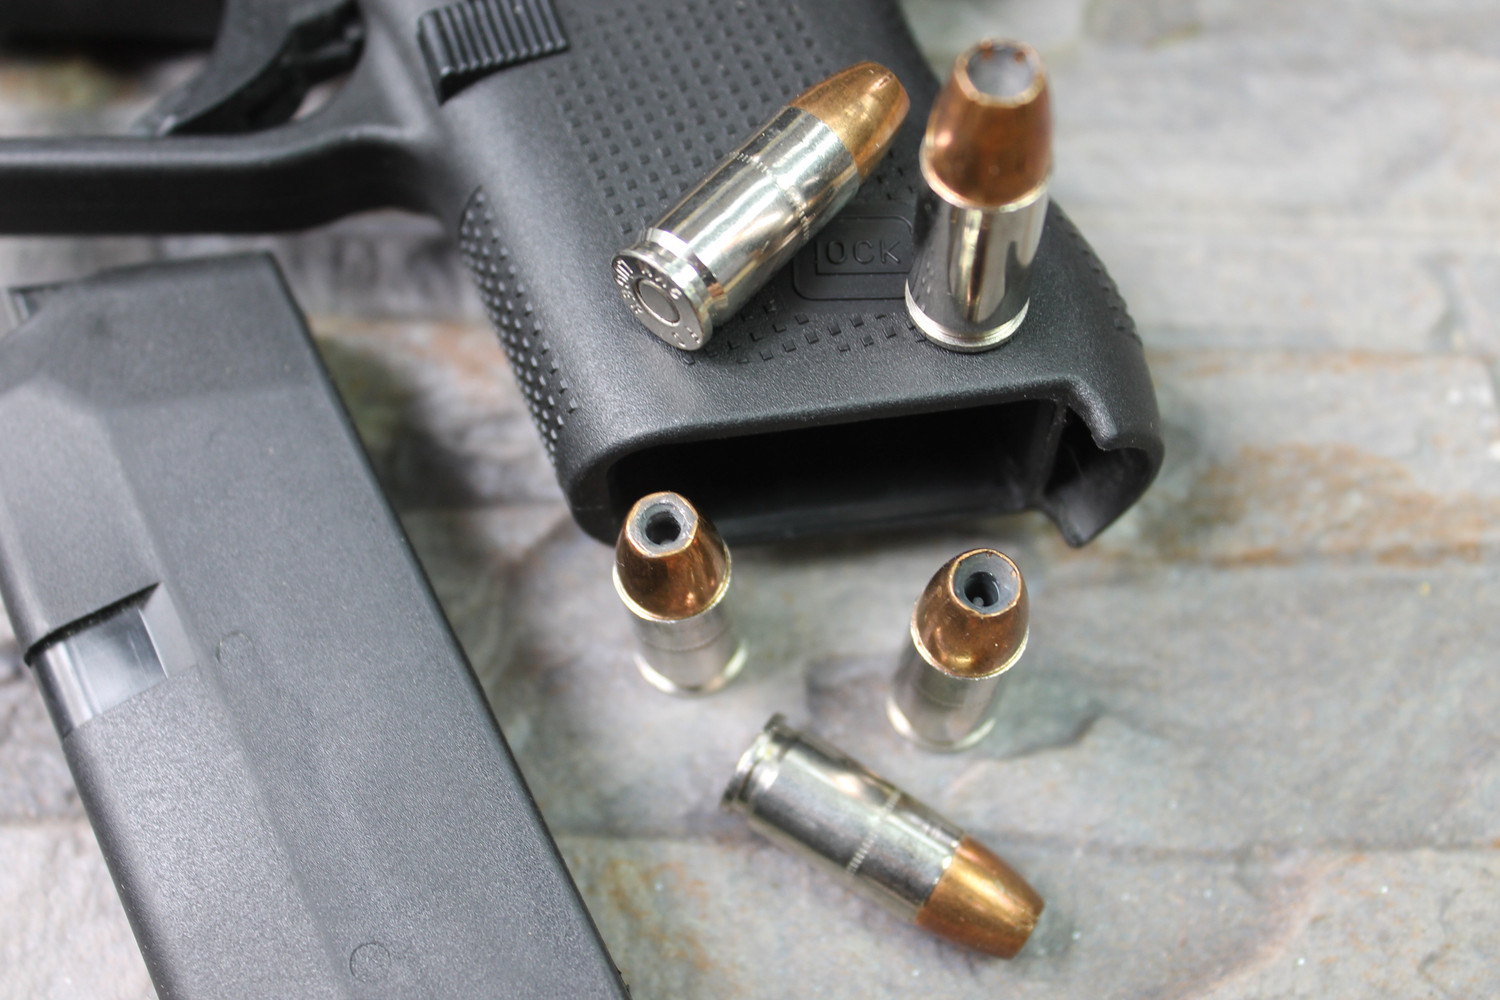 Glock 43 Concealed Carry Handgun Review